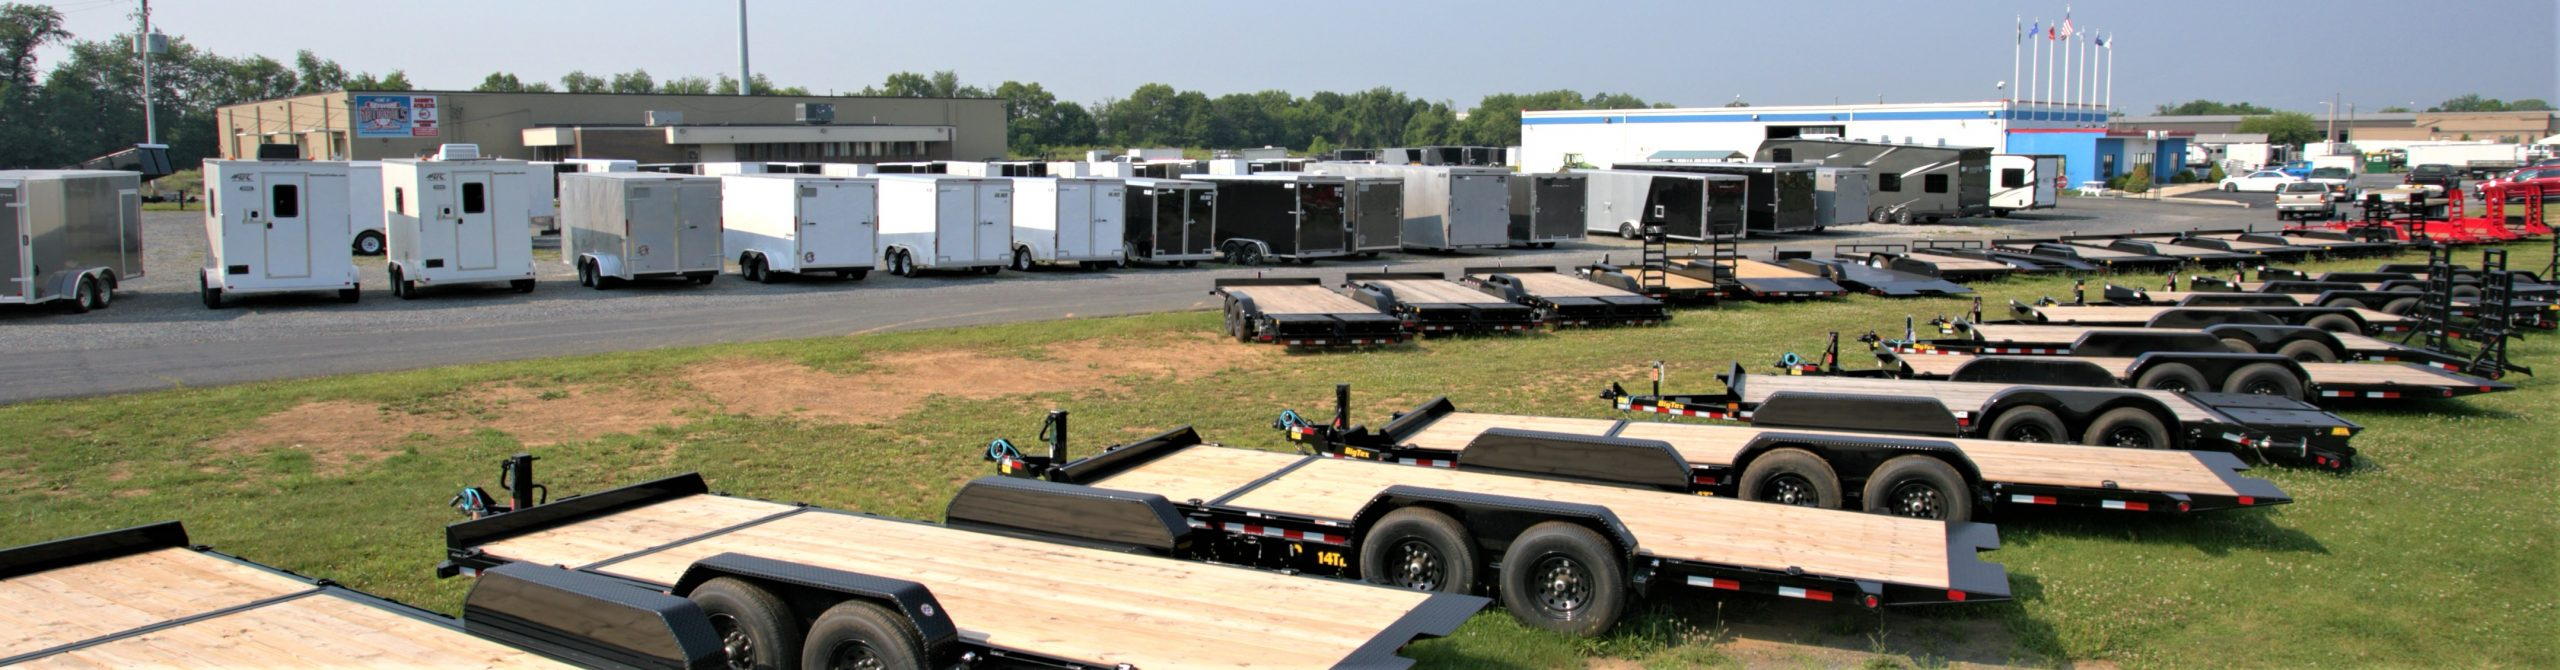 front trailer lot